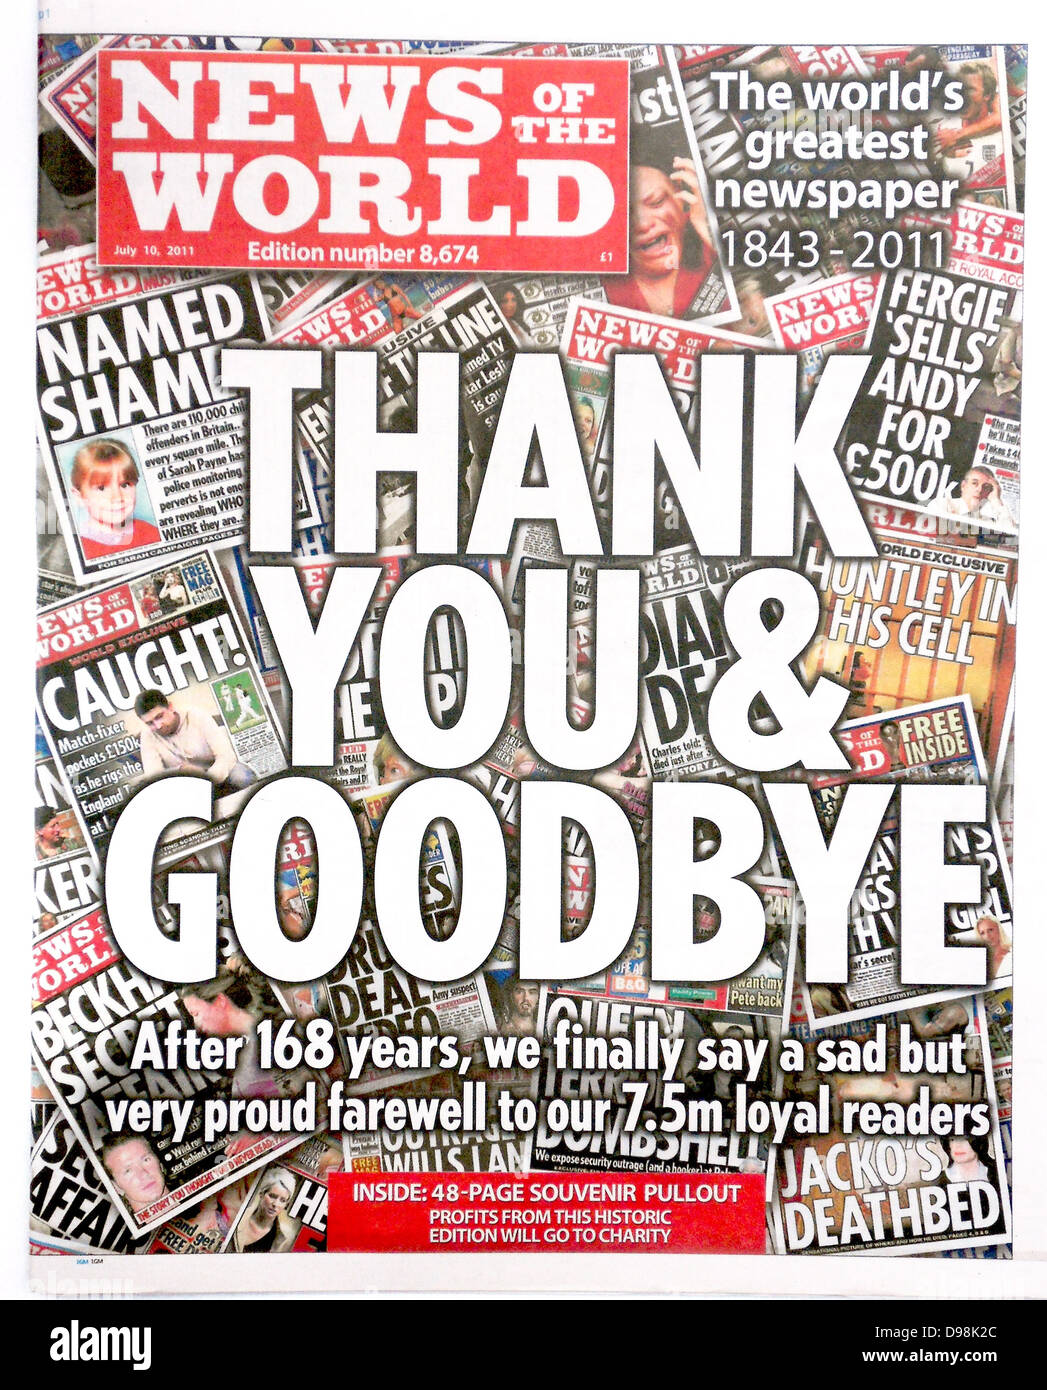 The 'News of the World' Newspaper 10th July 2011. Final issue. - Stock Image